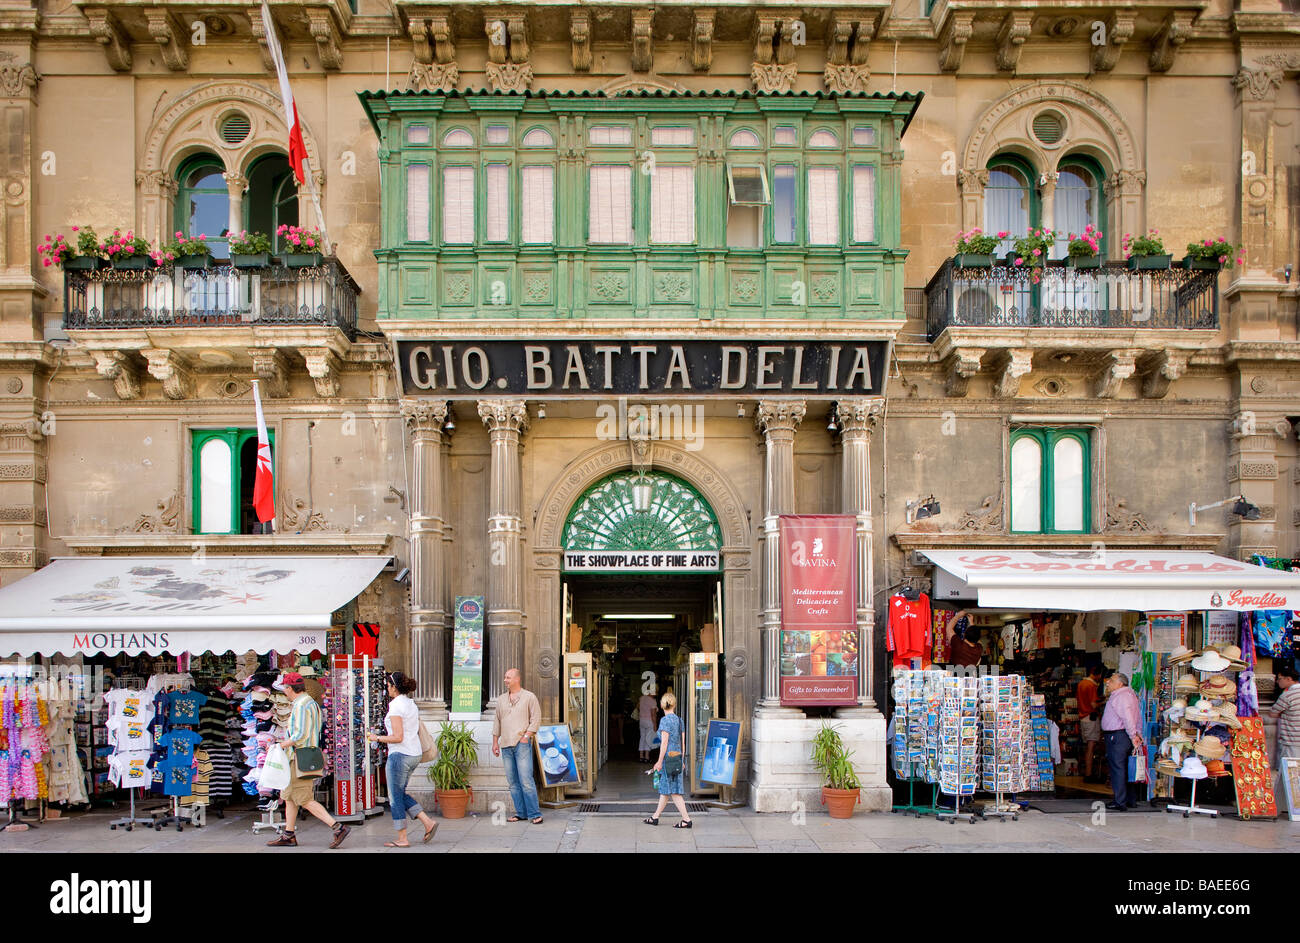 Malta, Valletta classified as World Heritage by the UNESCO, commercial building in the historical city center - Stock Image